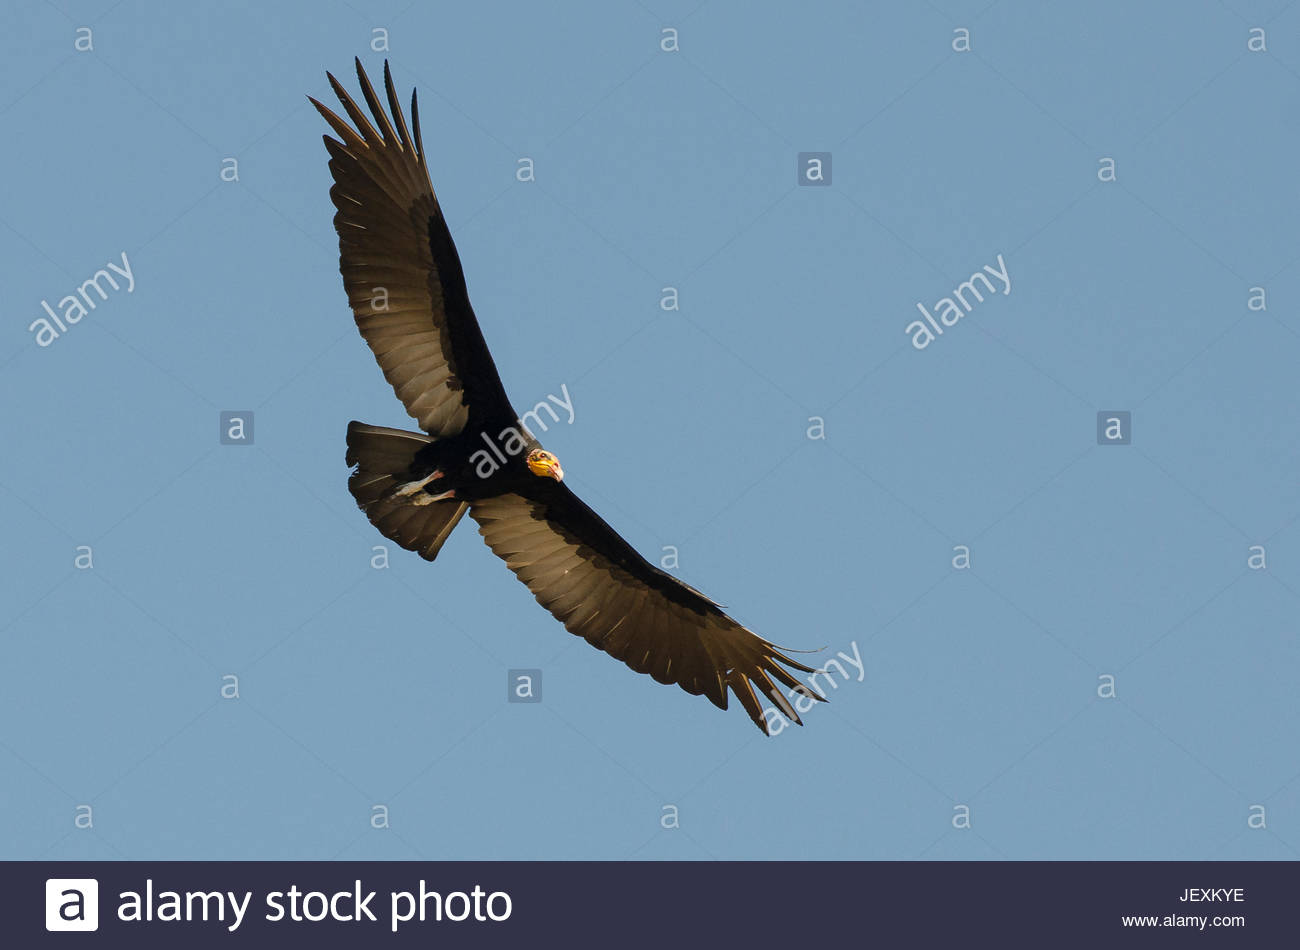 A lesser yellow-headed vulture, Cathartes burrovianus, in flight. Stock Photo